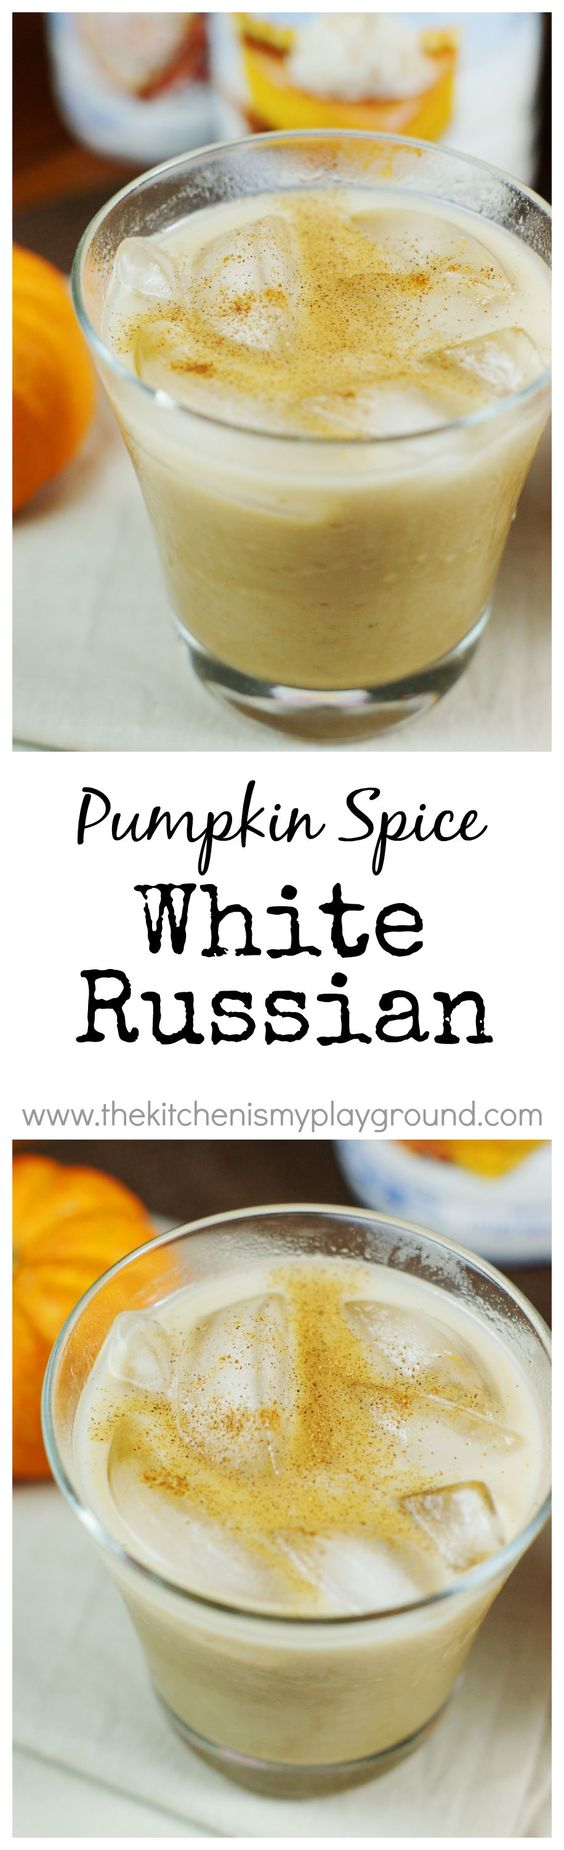 Pumpkin Spice White Russians - add a delicious seasonal twist to your cocktail line-up ... perfect for fall sipping.   www.thekitchenismyplayground.com